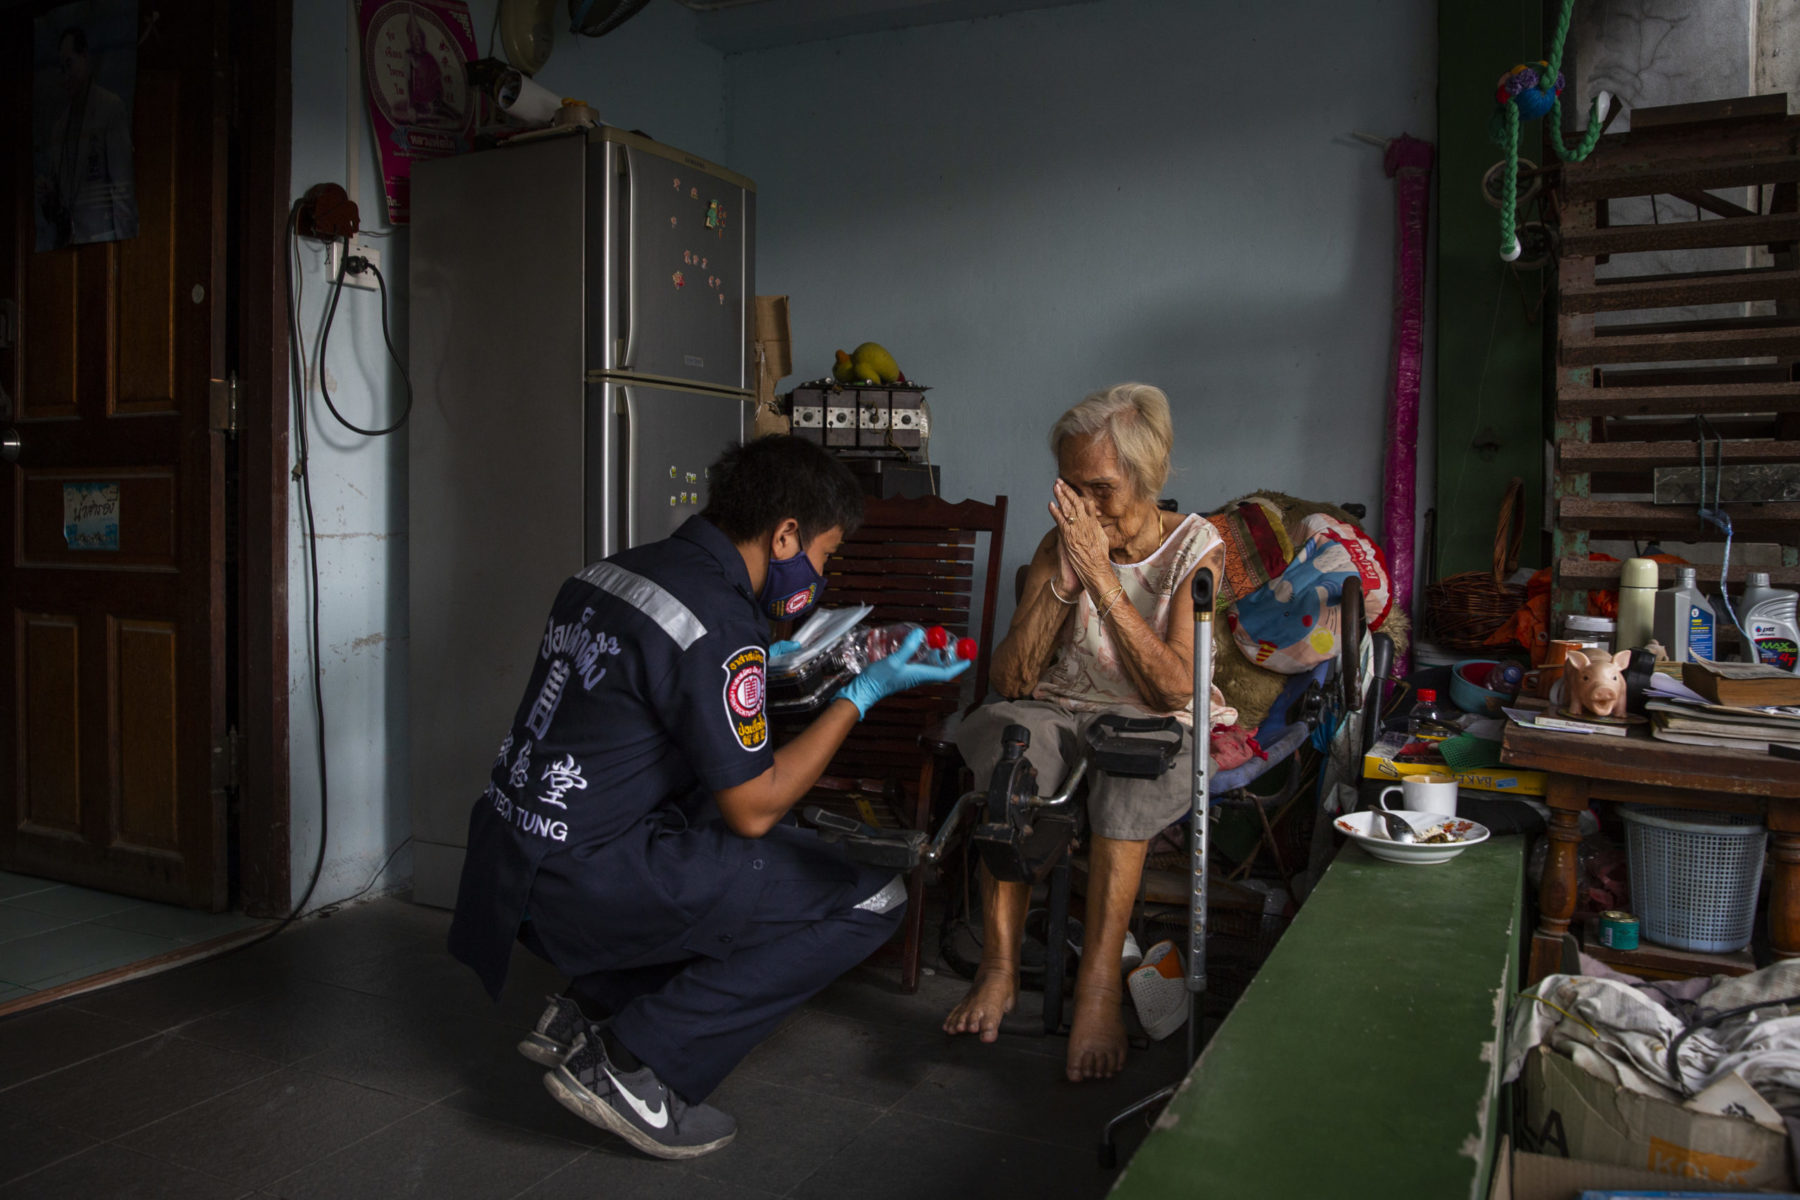 A masked healthcare worker assists an elderly person in their home.